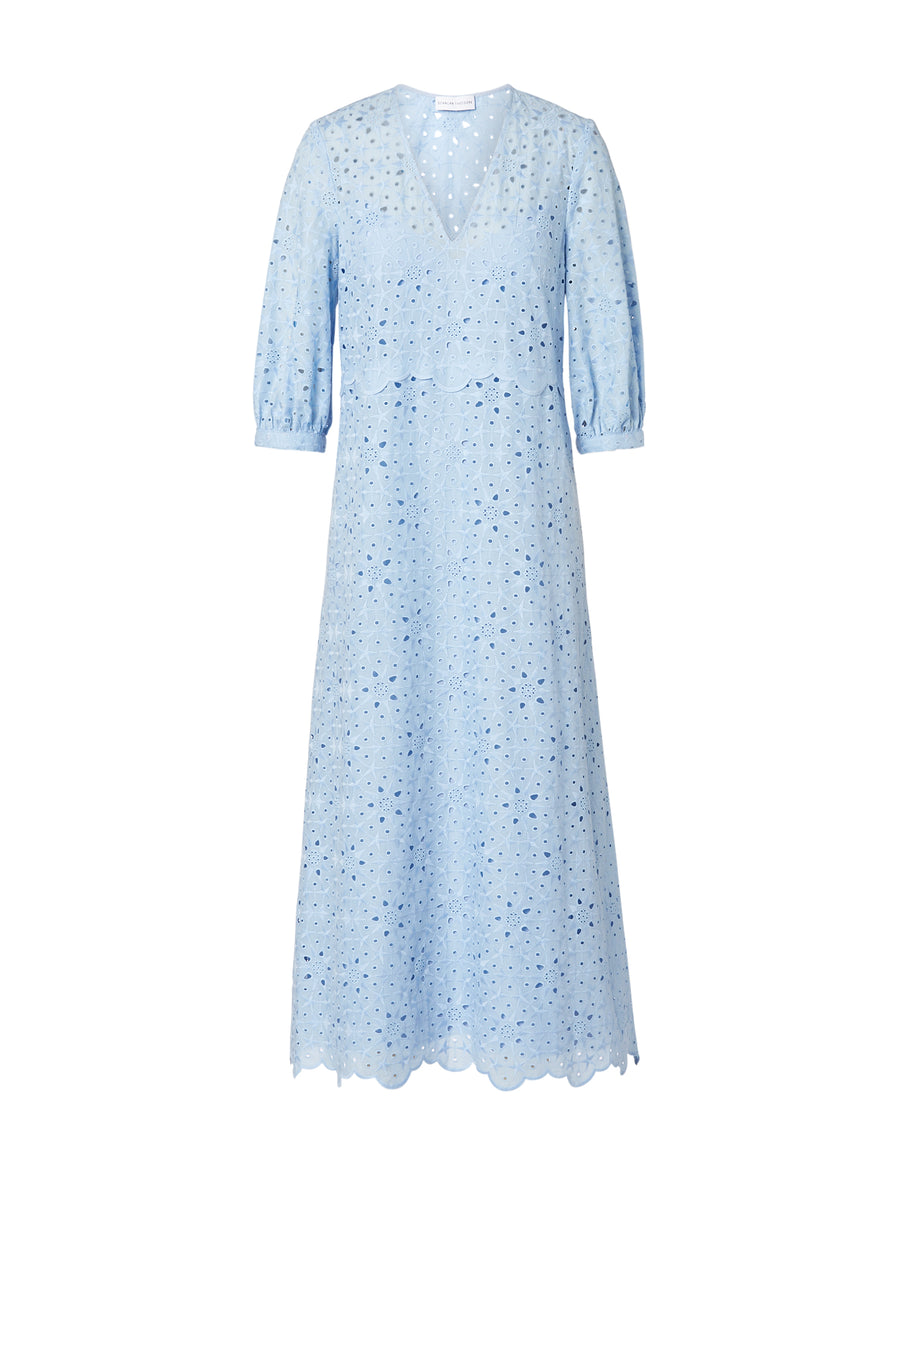 Embroidered Cotton Dress Powder, midi length, 3/4 Sleeves, v- neckline